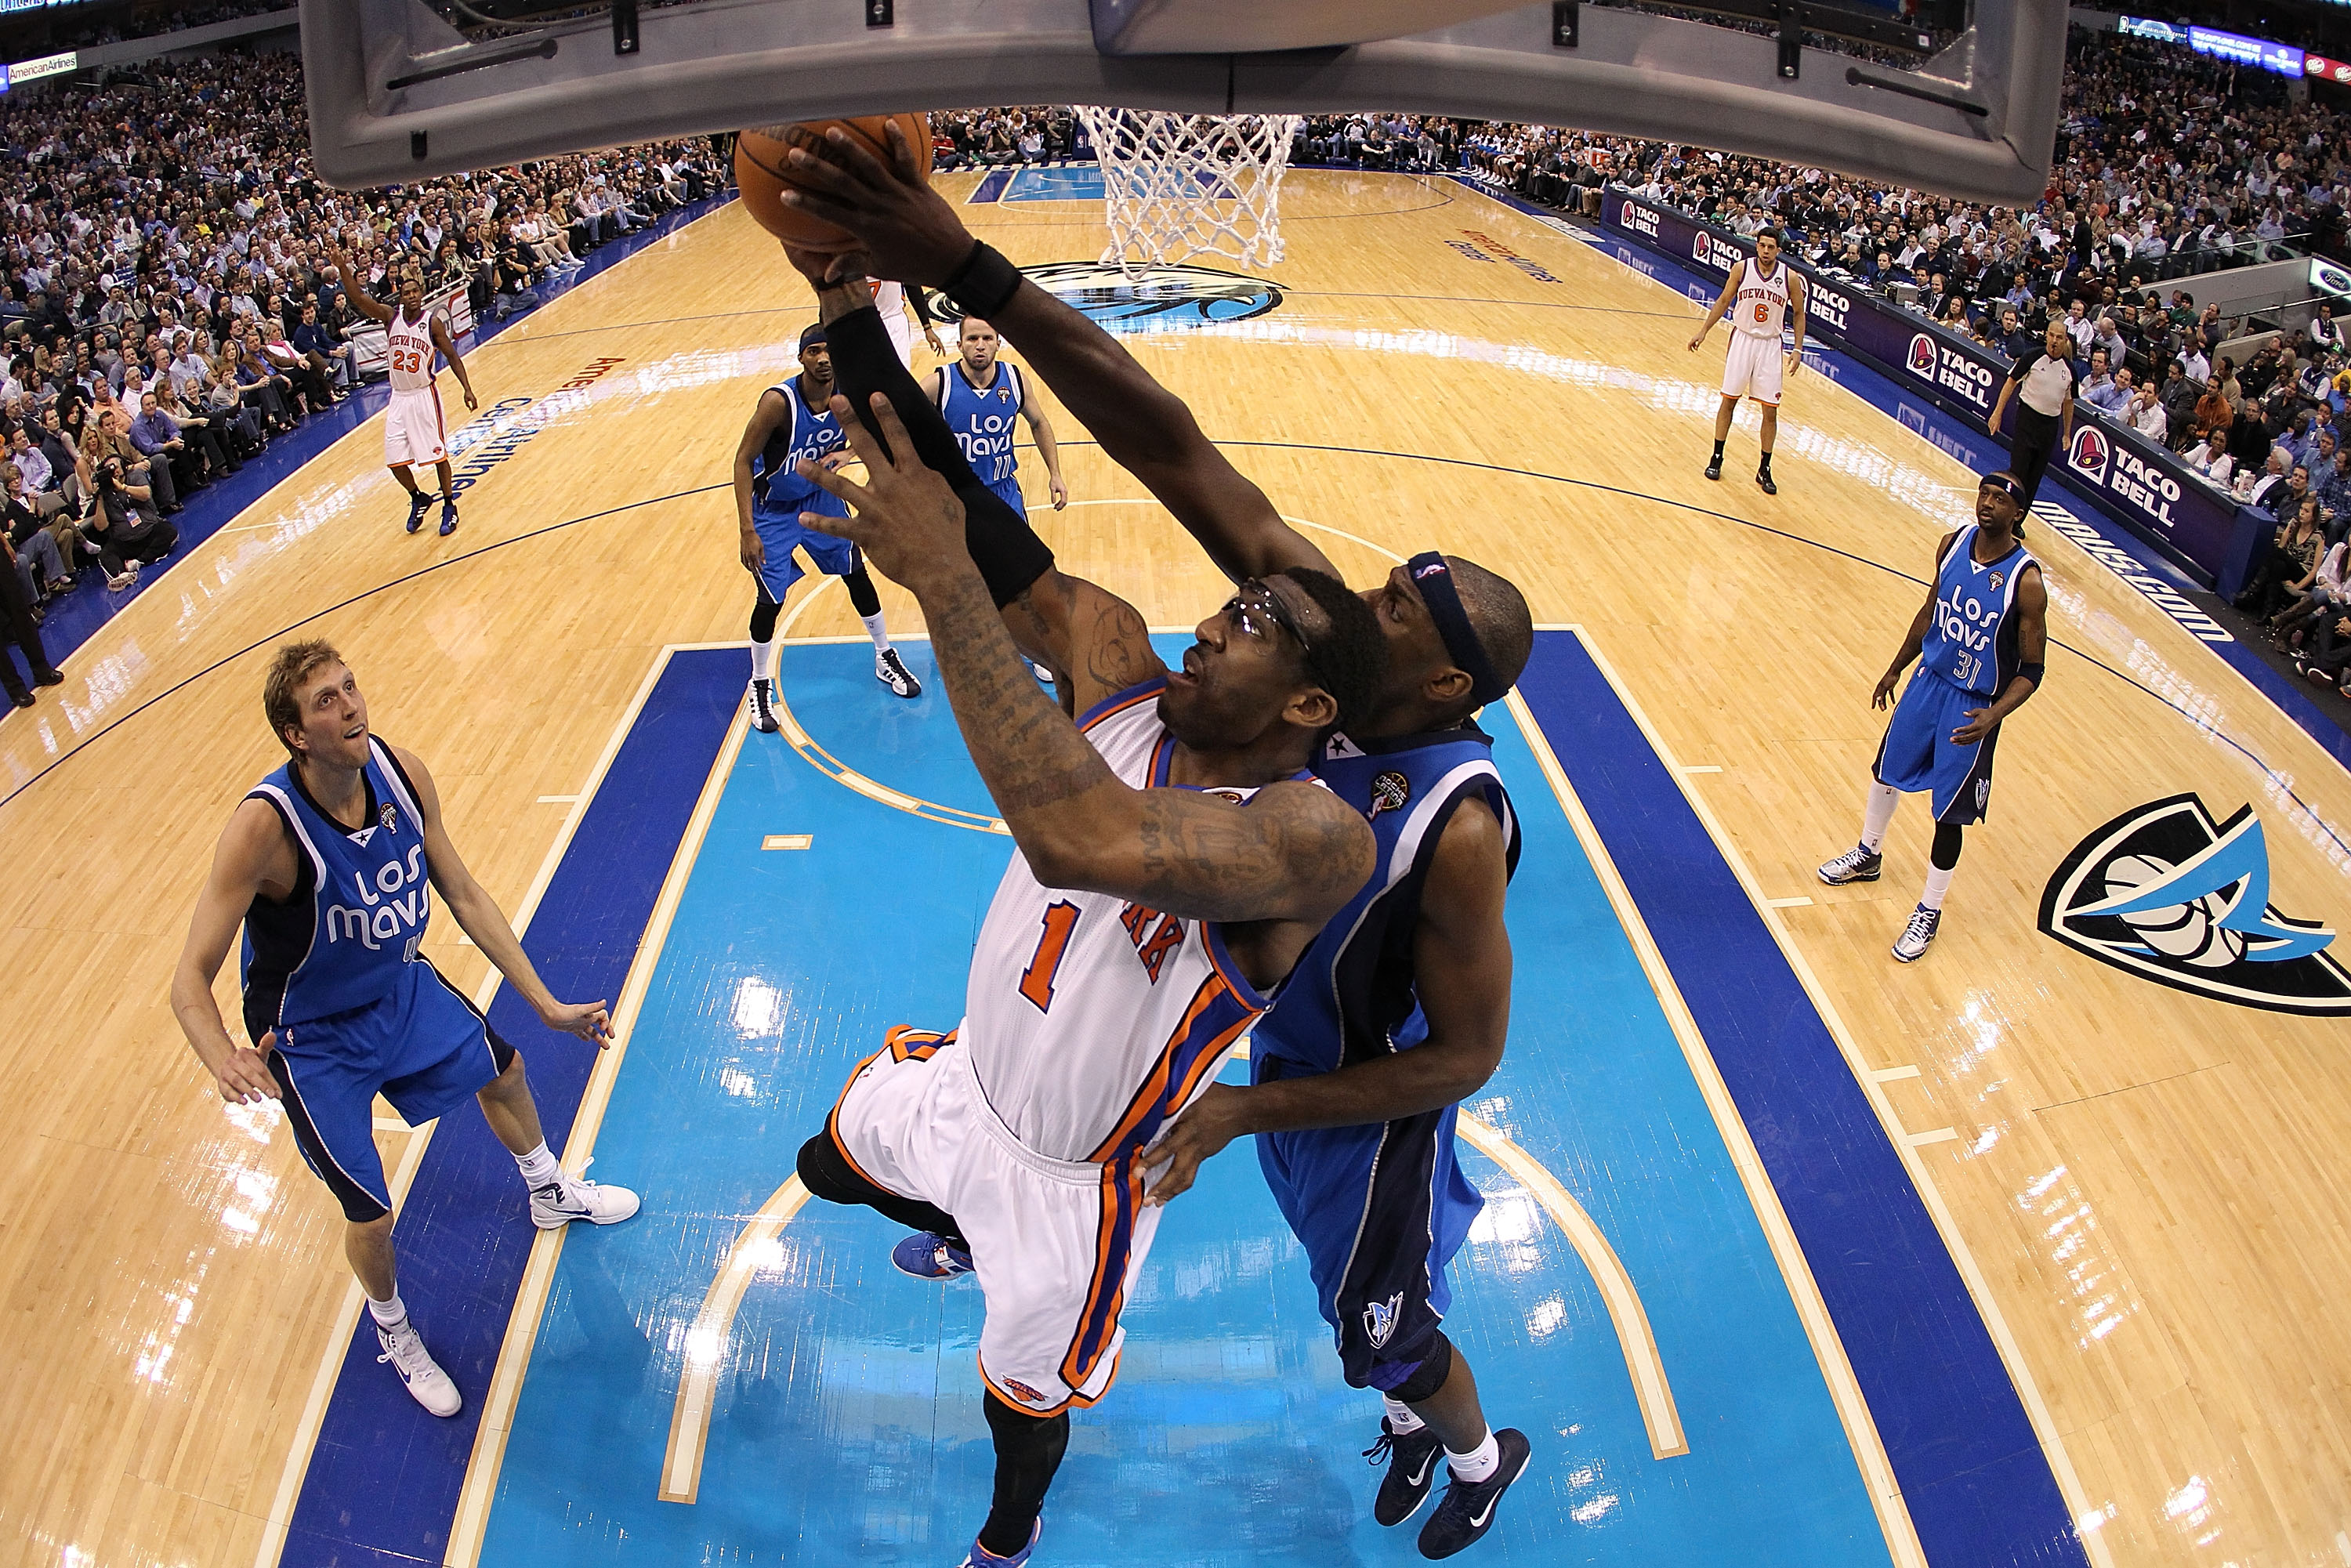 TX - MARCH 10:  Amar'e Stoudemire #1 of the New York Knicks is rejected by Brendan Haywood #33 of the Dallas Mavericks at American Airlines Center on March 10, 2011 in Dallas, Texas.  NOTE TO USER: User expressly acknowledges and agrees that, by downloadi